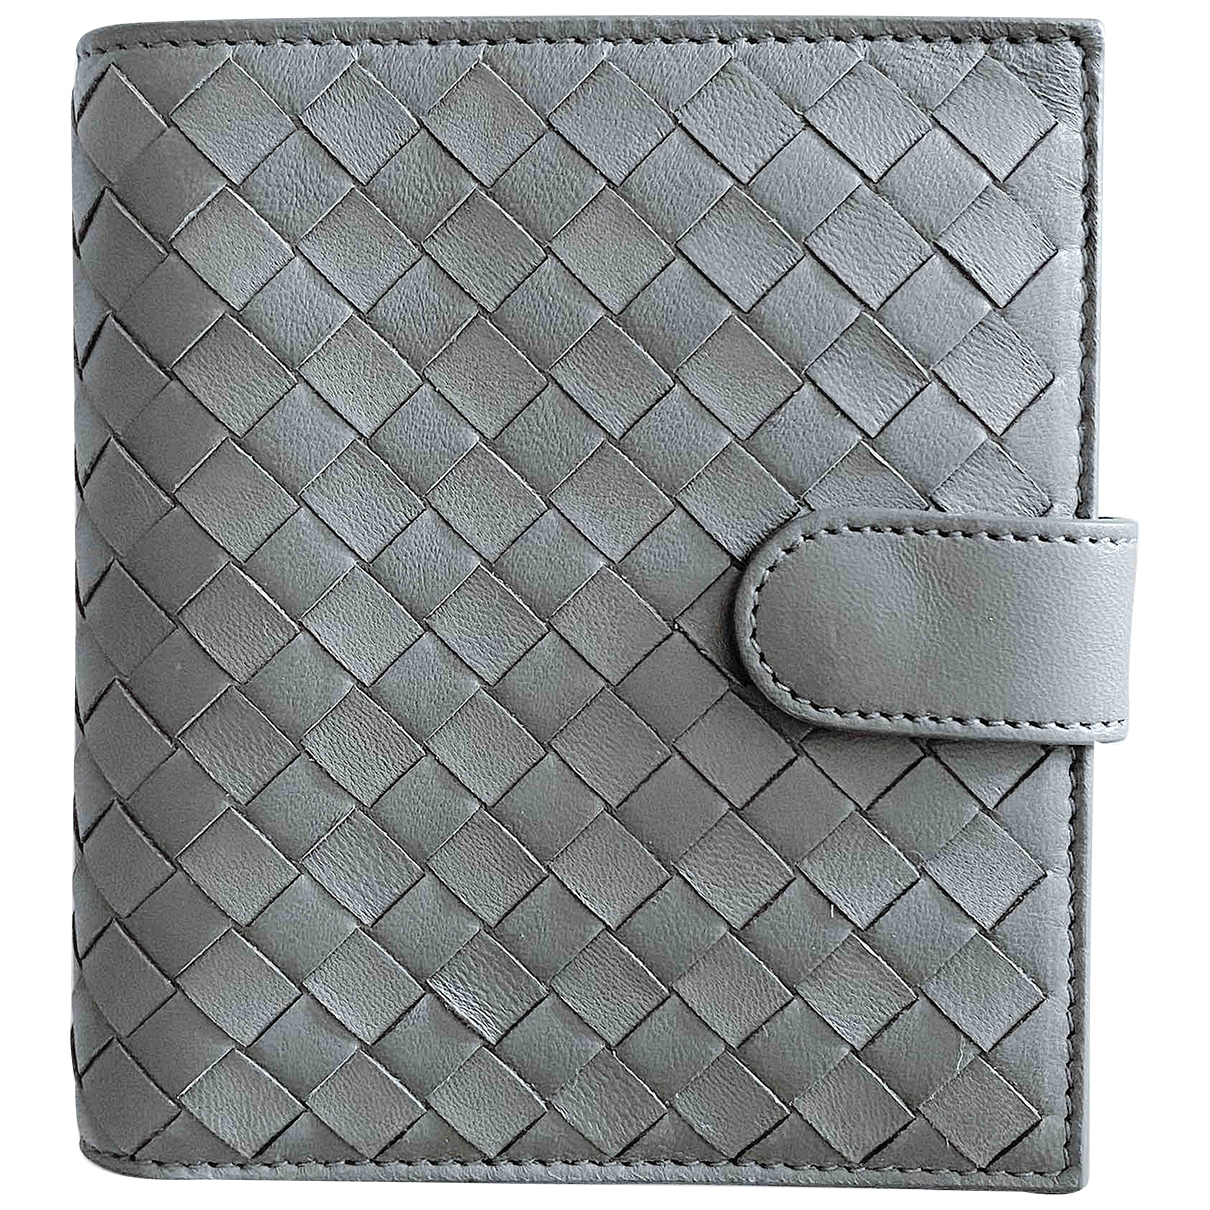 Bottega Veneta Intrecciato Grey Leather wallet for Women \N